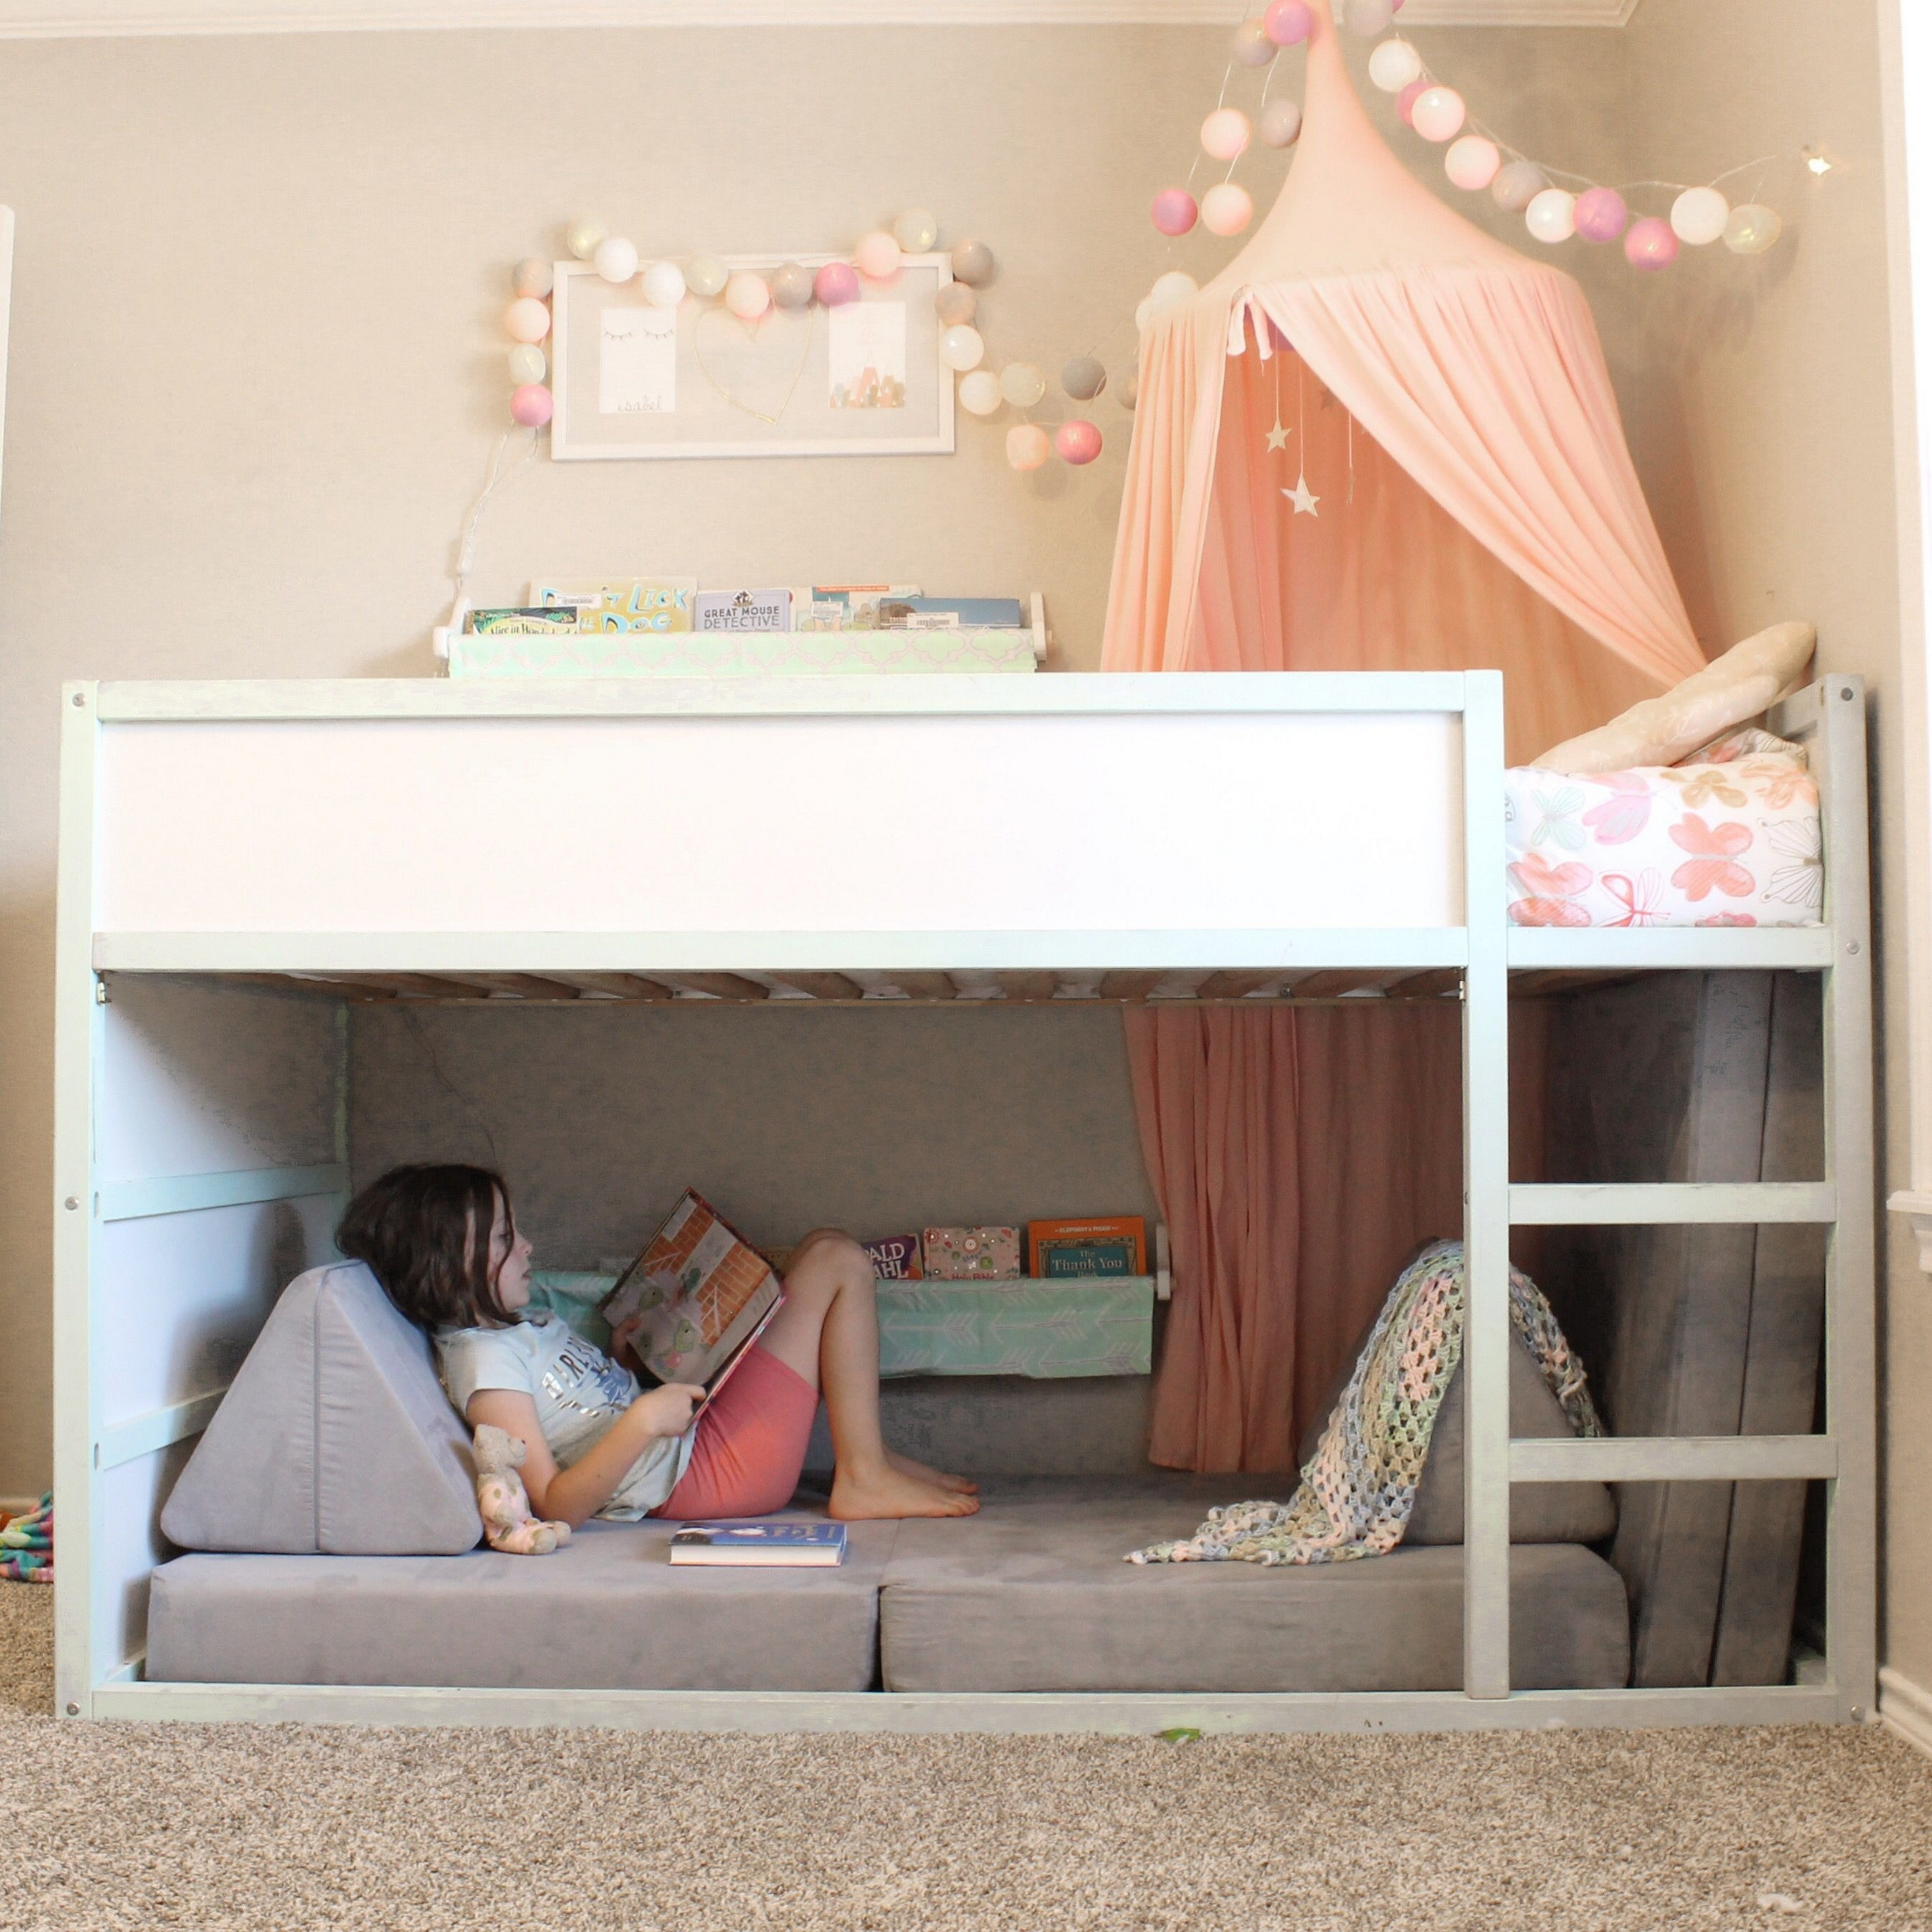 31 Top Choices Bunk Beds For Kids Design Ideas Tips For Choosing It 24